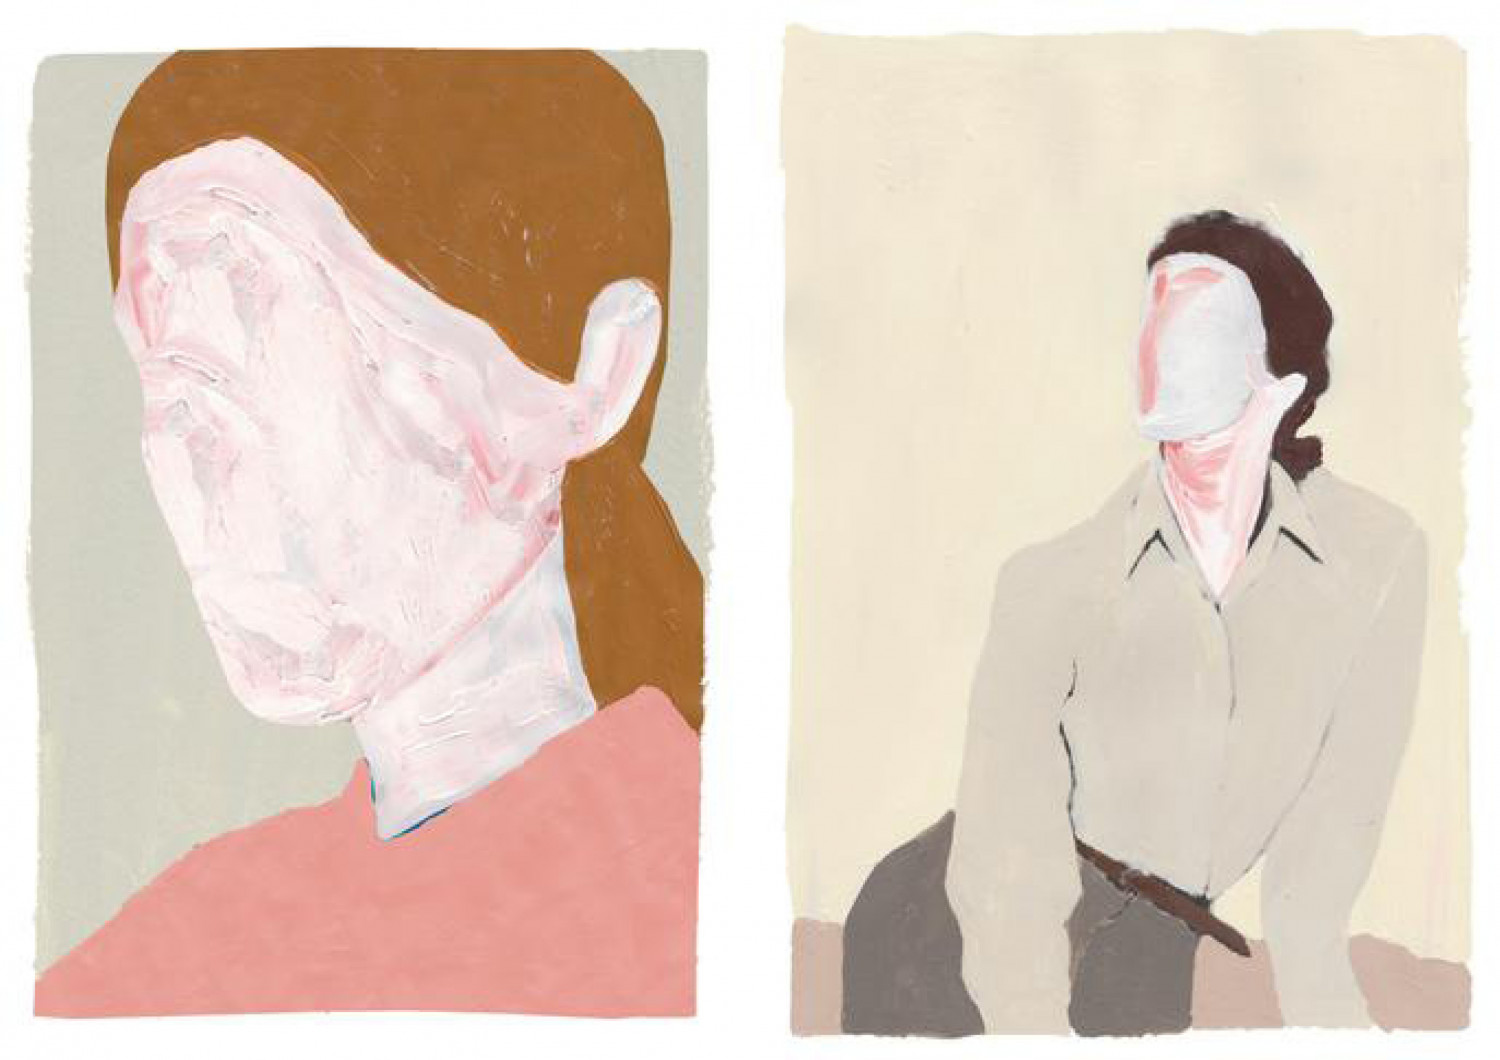 Taking A Break is a series of limited edition prints by Stine Maria Aalykke